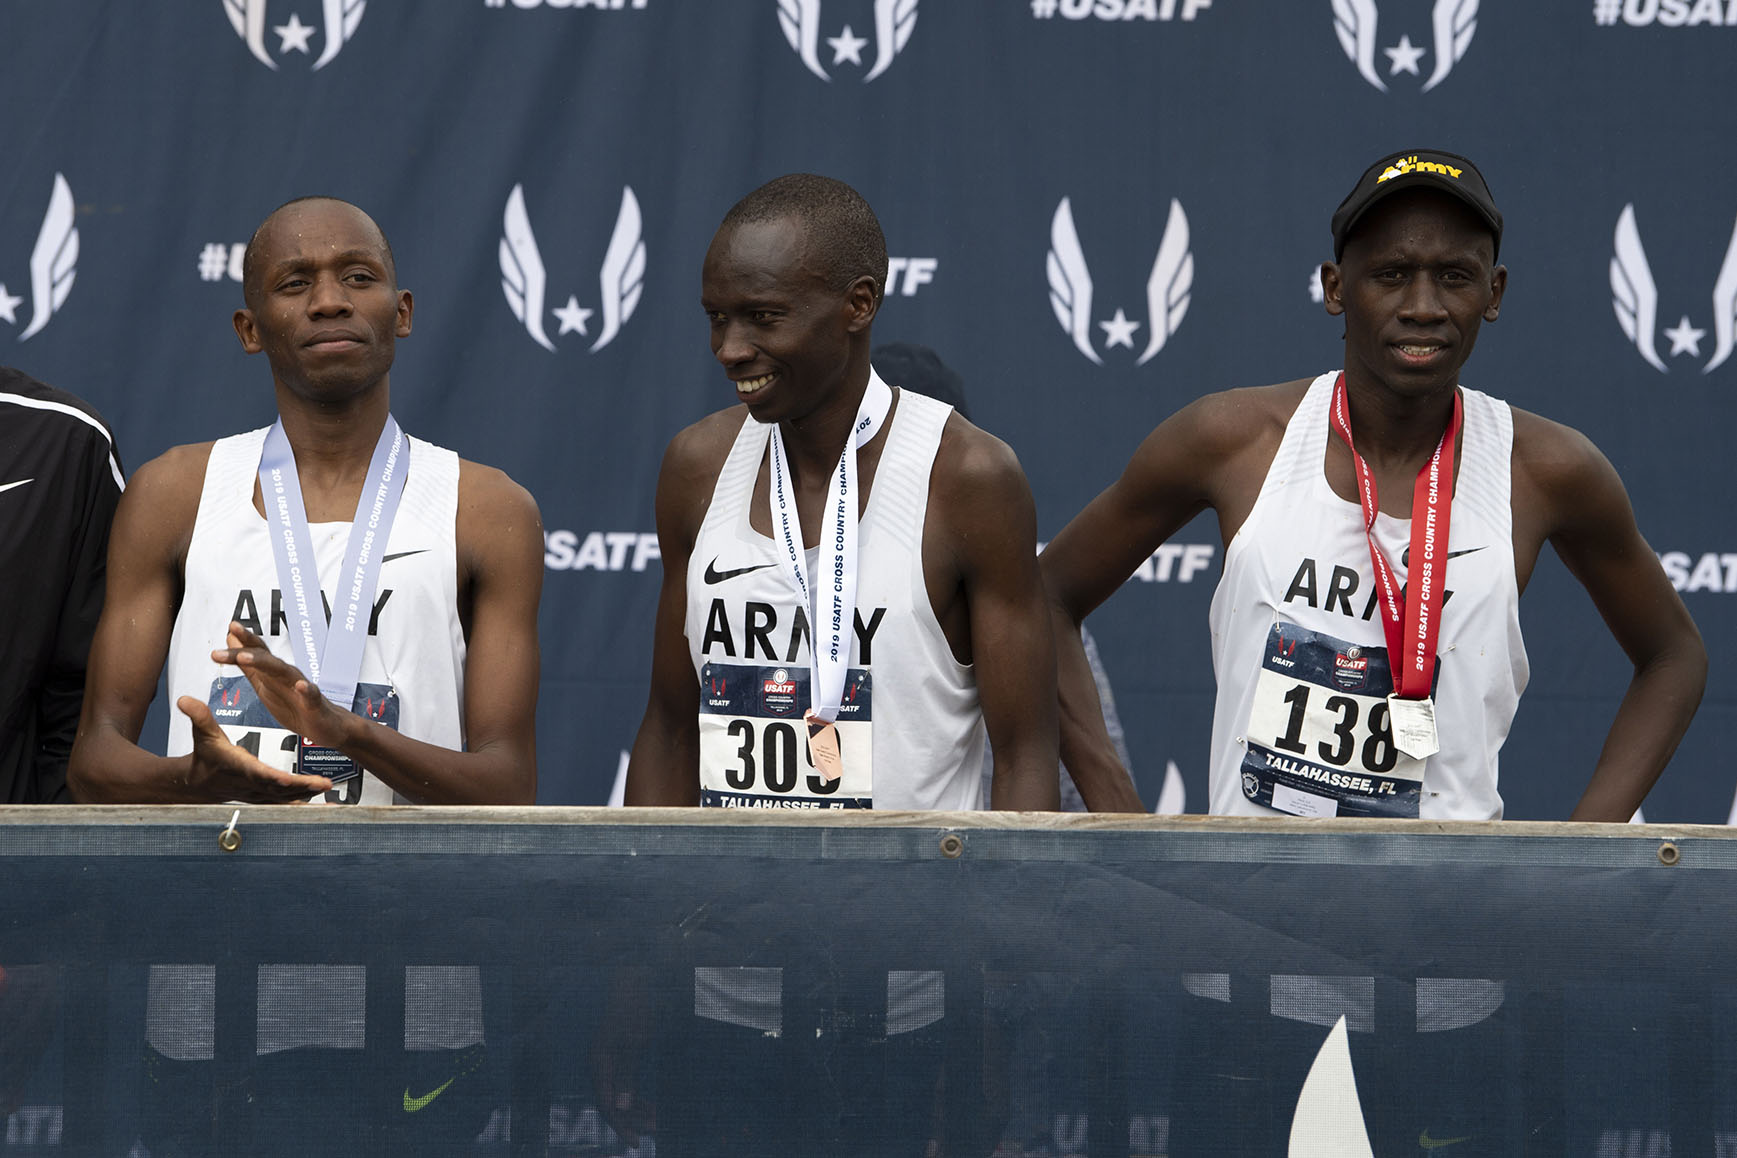 4c078e14 Bor brothers lead Army to Cross Country championship > Armed Forces ...